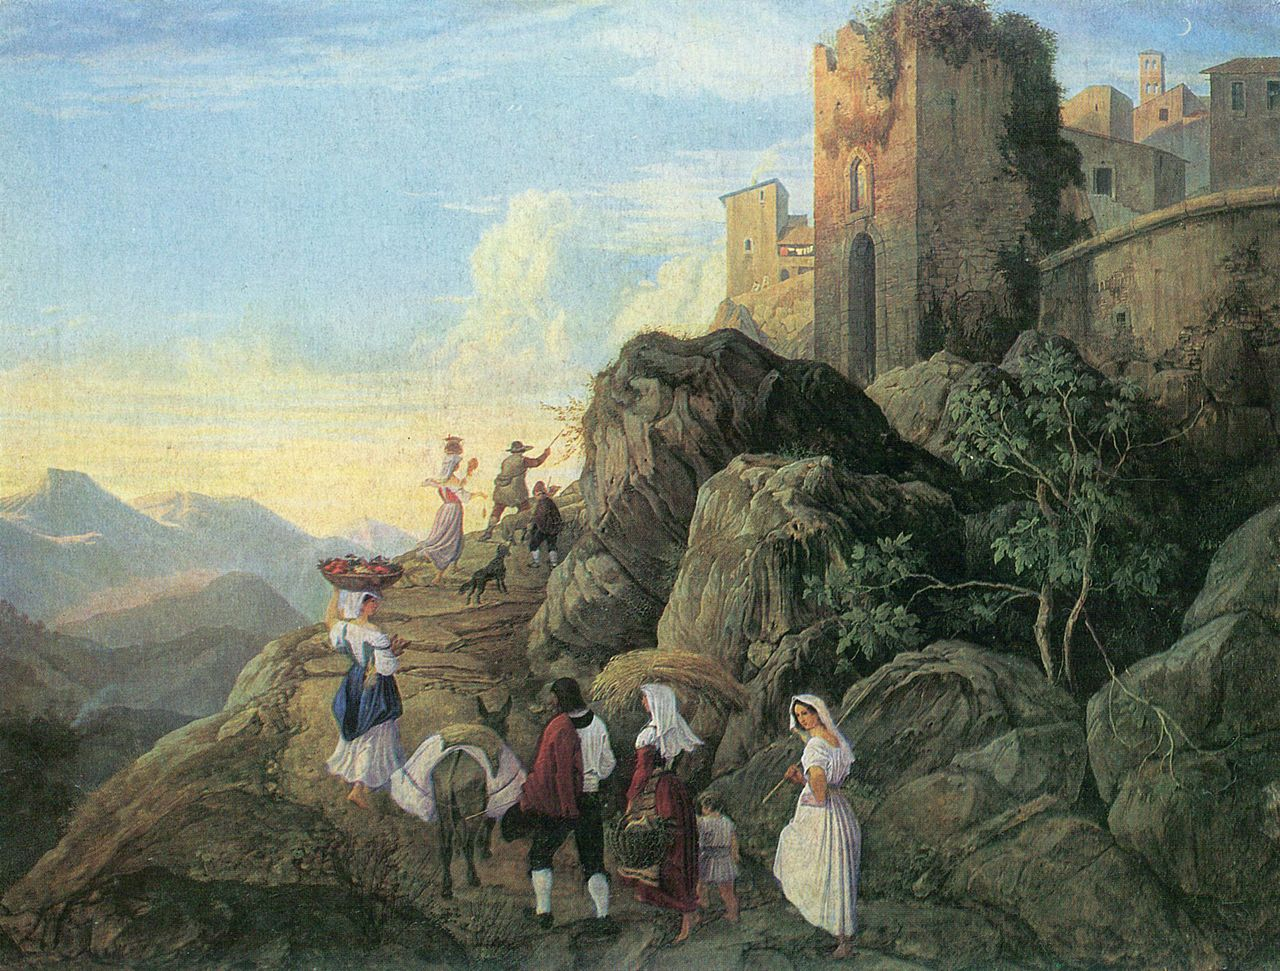 1280px-Ludwig_Richter_Civitella.jpg